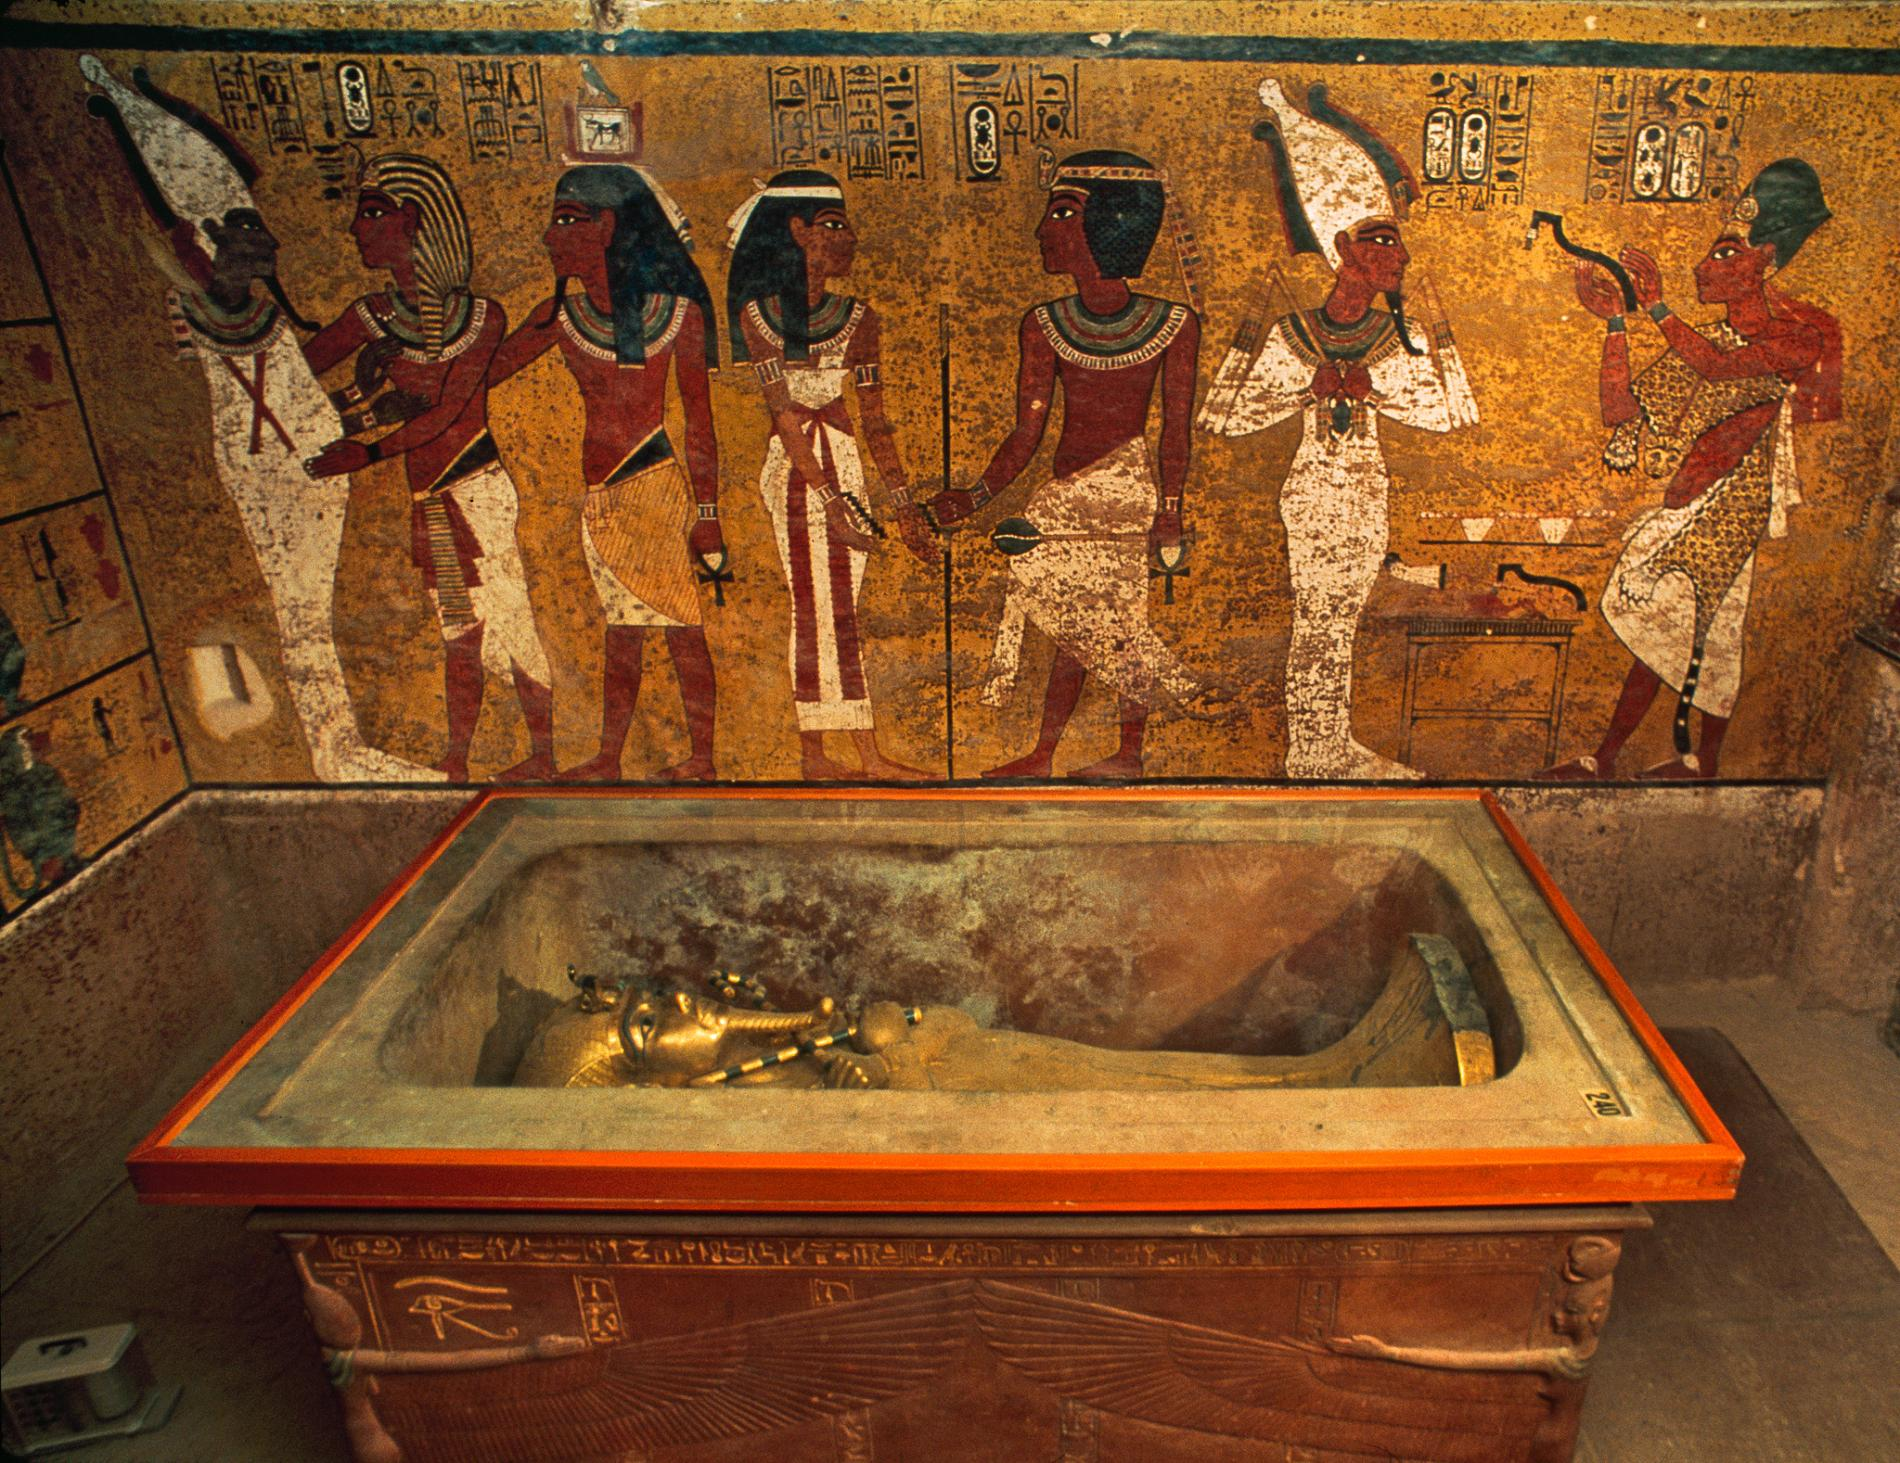 Carter's House & the Replica Tomb of Tutankhamun Luxor, Replica of King Tut's Tomb to Open in Egypt